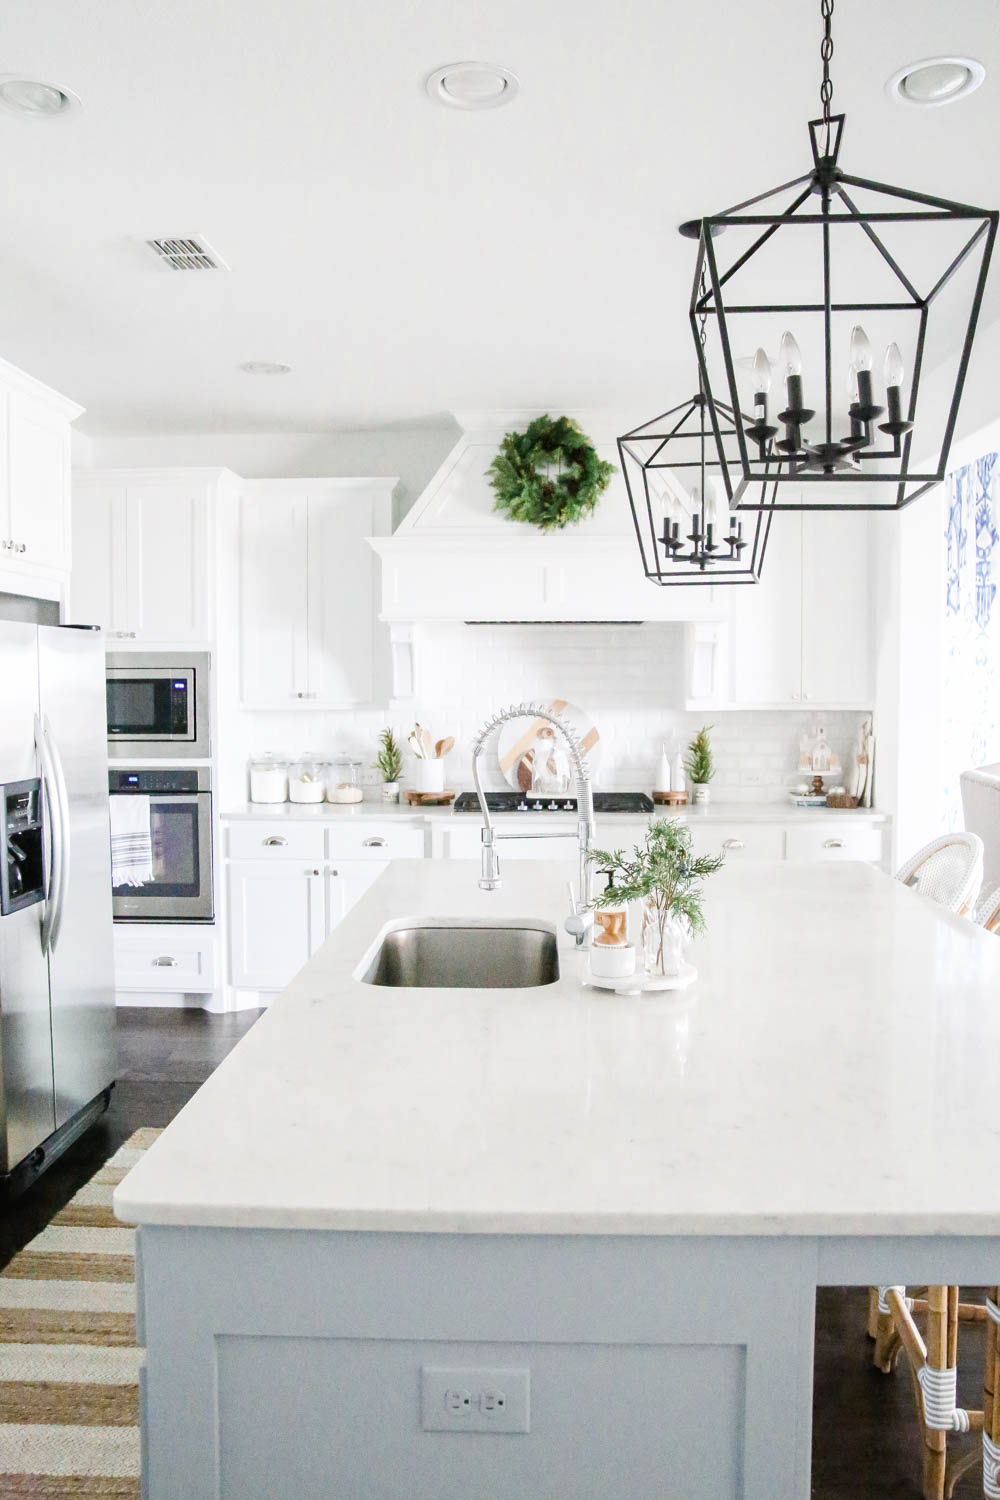 White kitchen with winter green Christmas decor. #ABlissfulNest #Christmasdecor #holidaydecorating